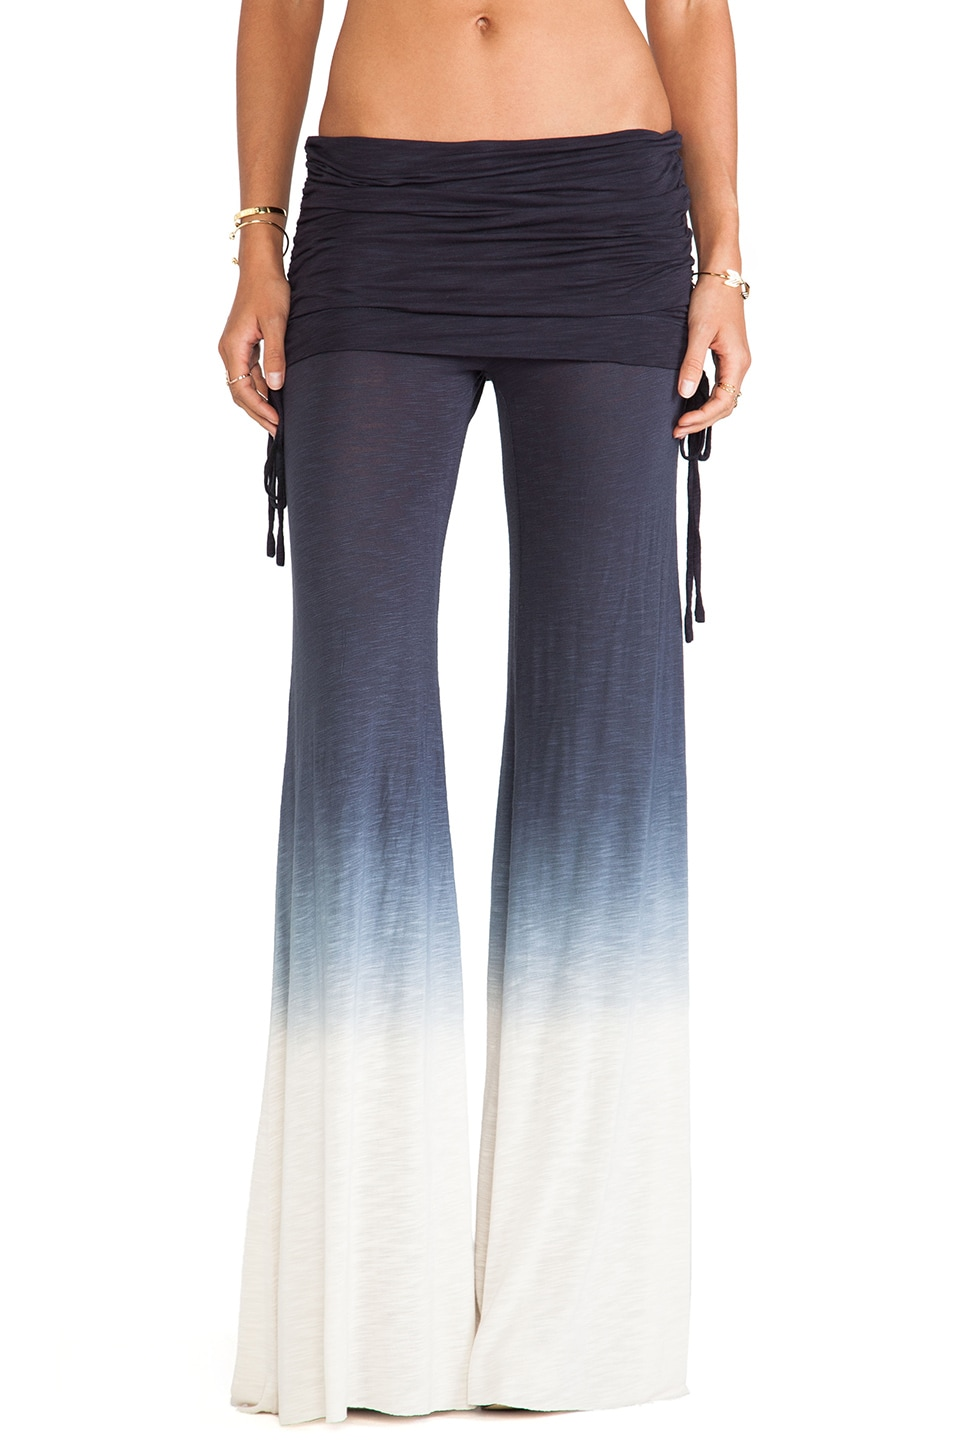 Young, Fabulous & Broke Sierra Pant Ombre in Black